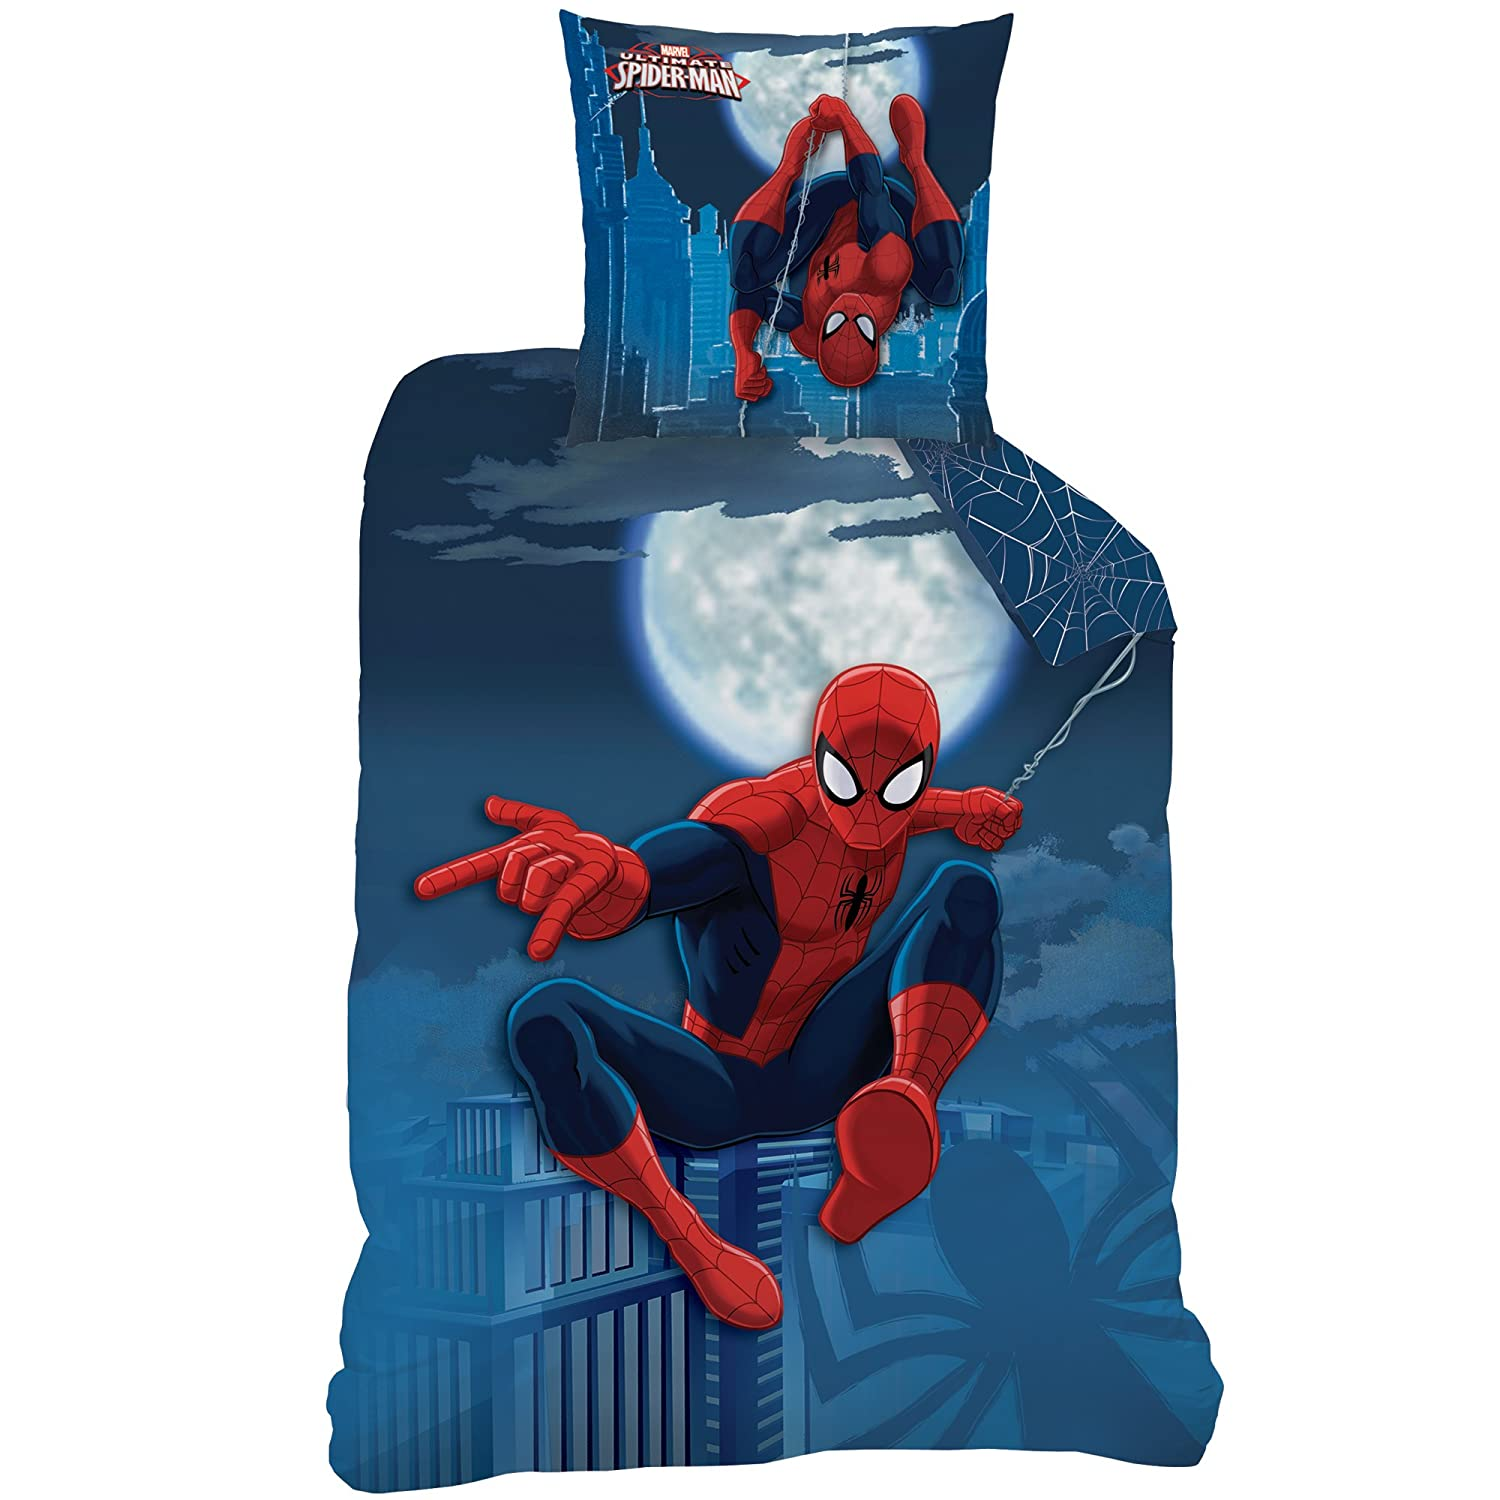 Spiderman-Bettwäsche 140 x 200 /63 x 63 Javoli